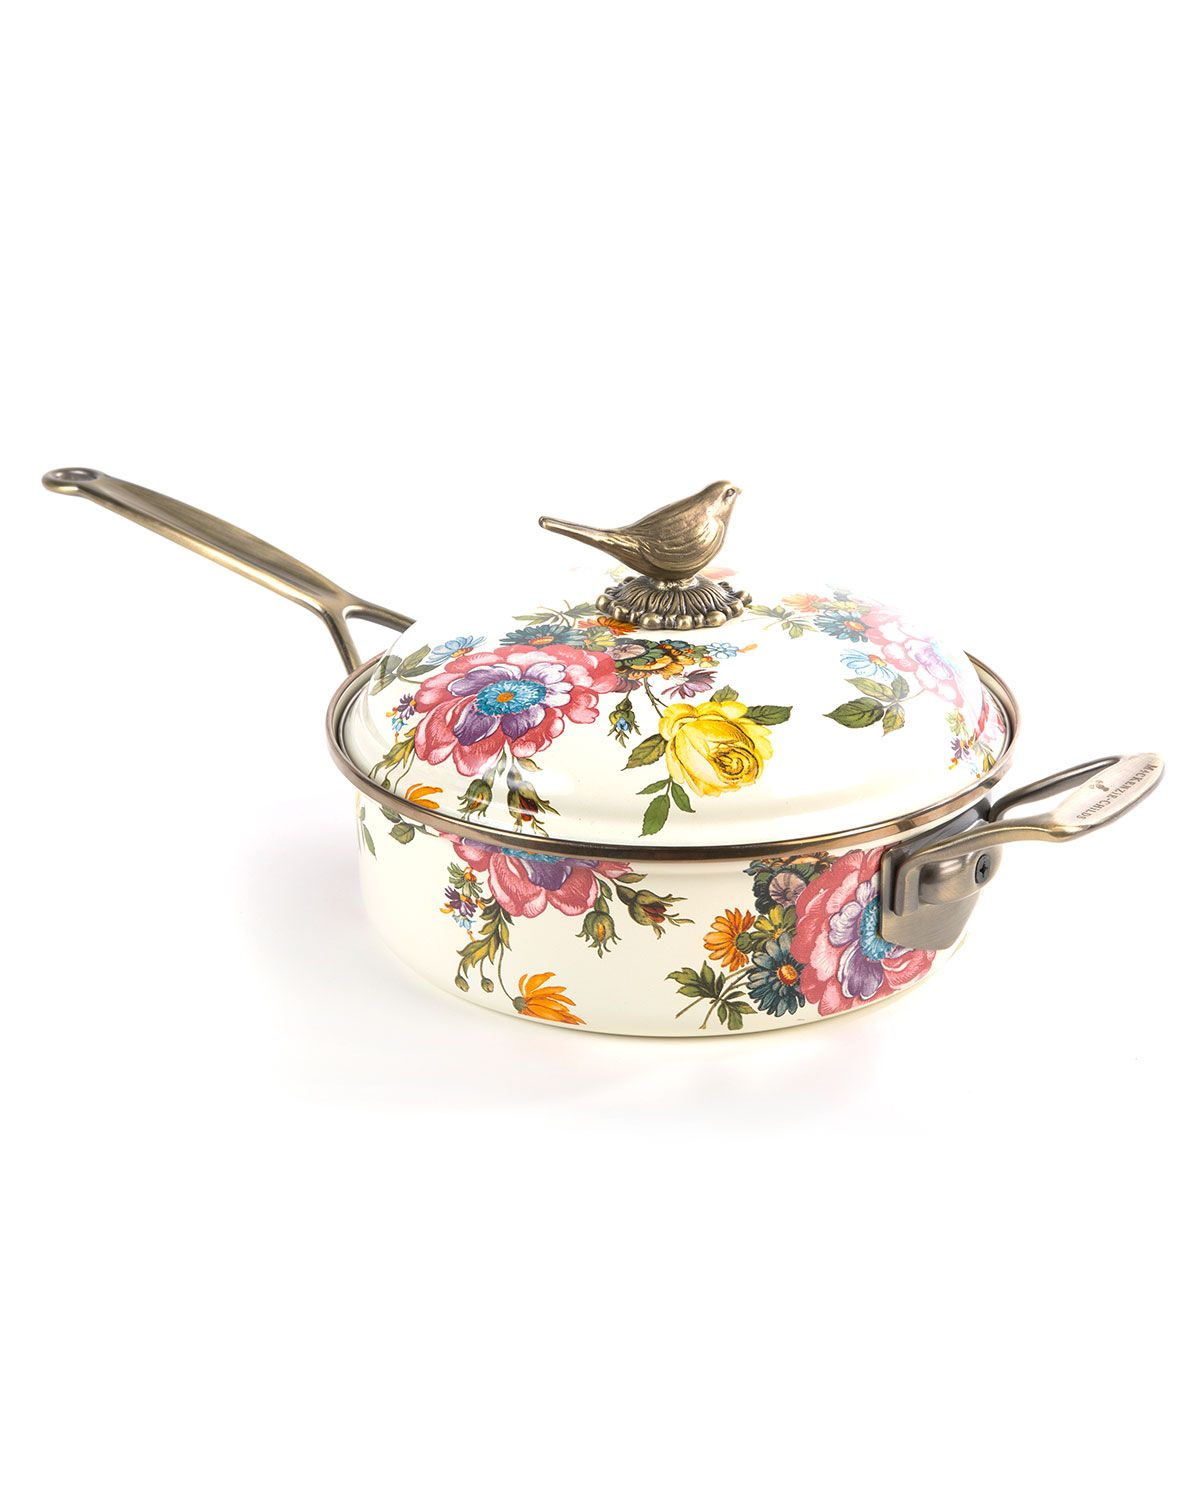 Flower Market 3 Quart Saute Pan